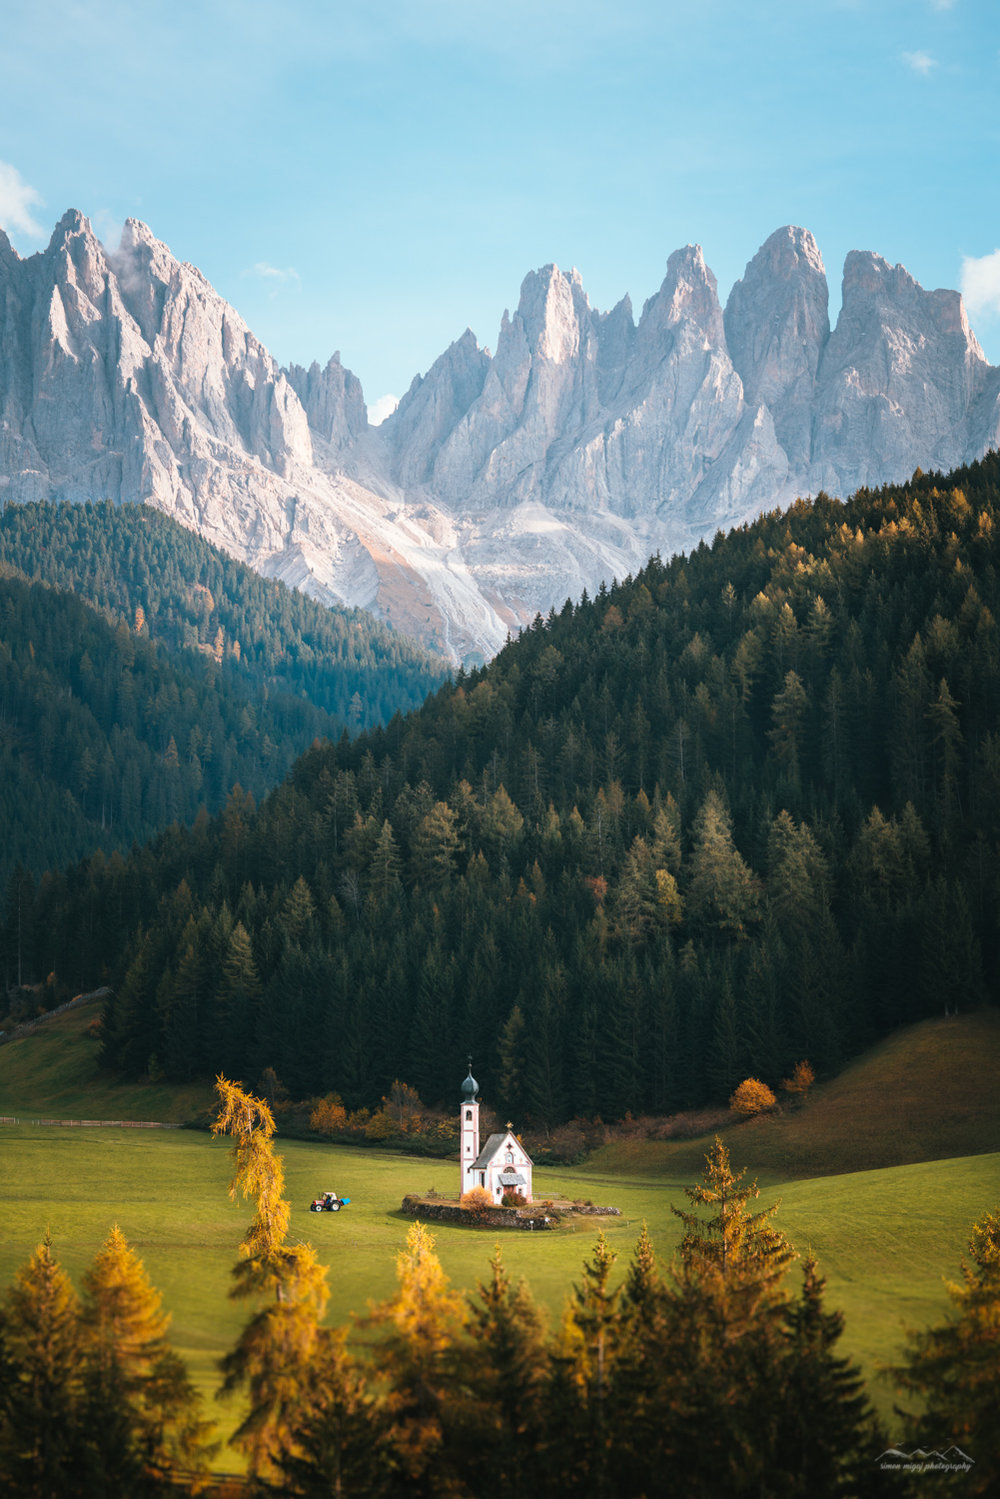 Incredible scale of the Val di Funes